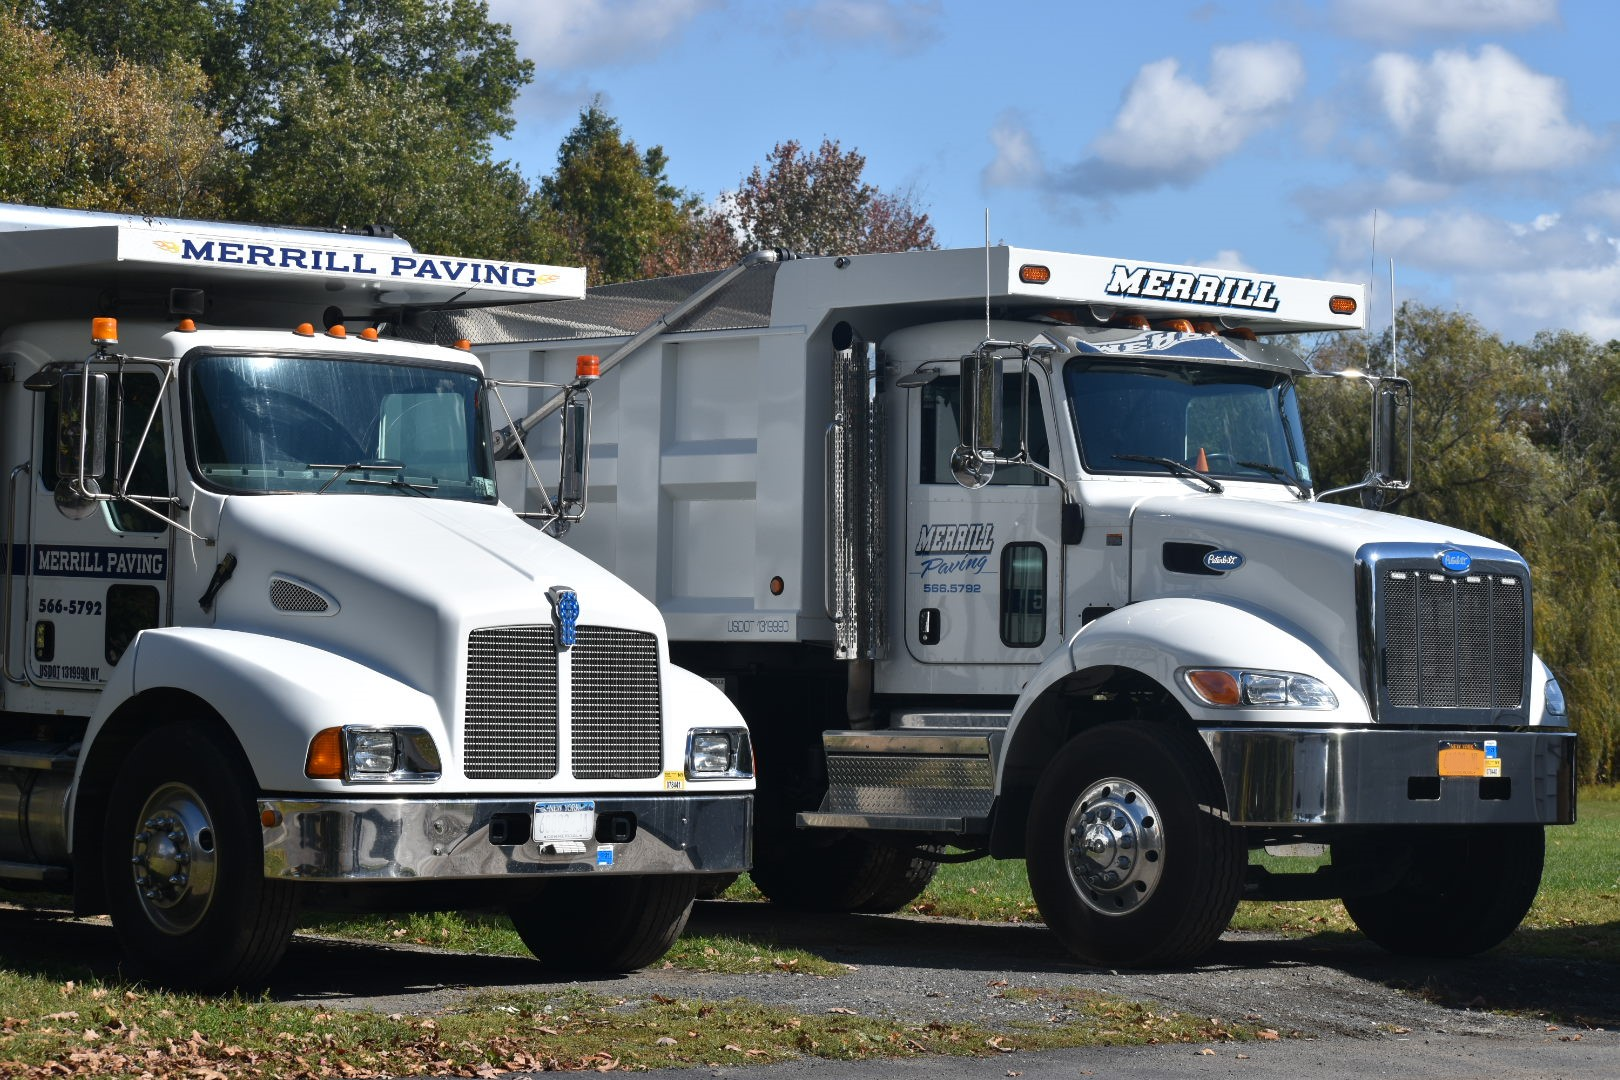 merrill paving company trucks